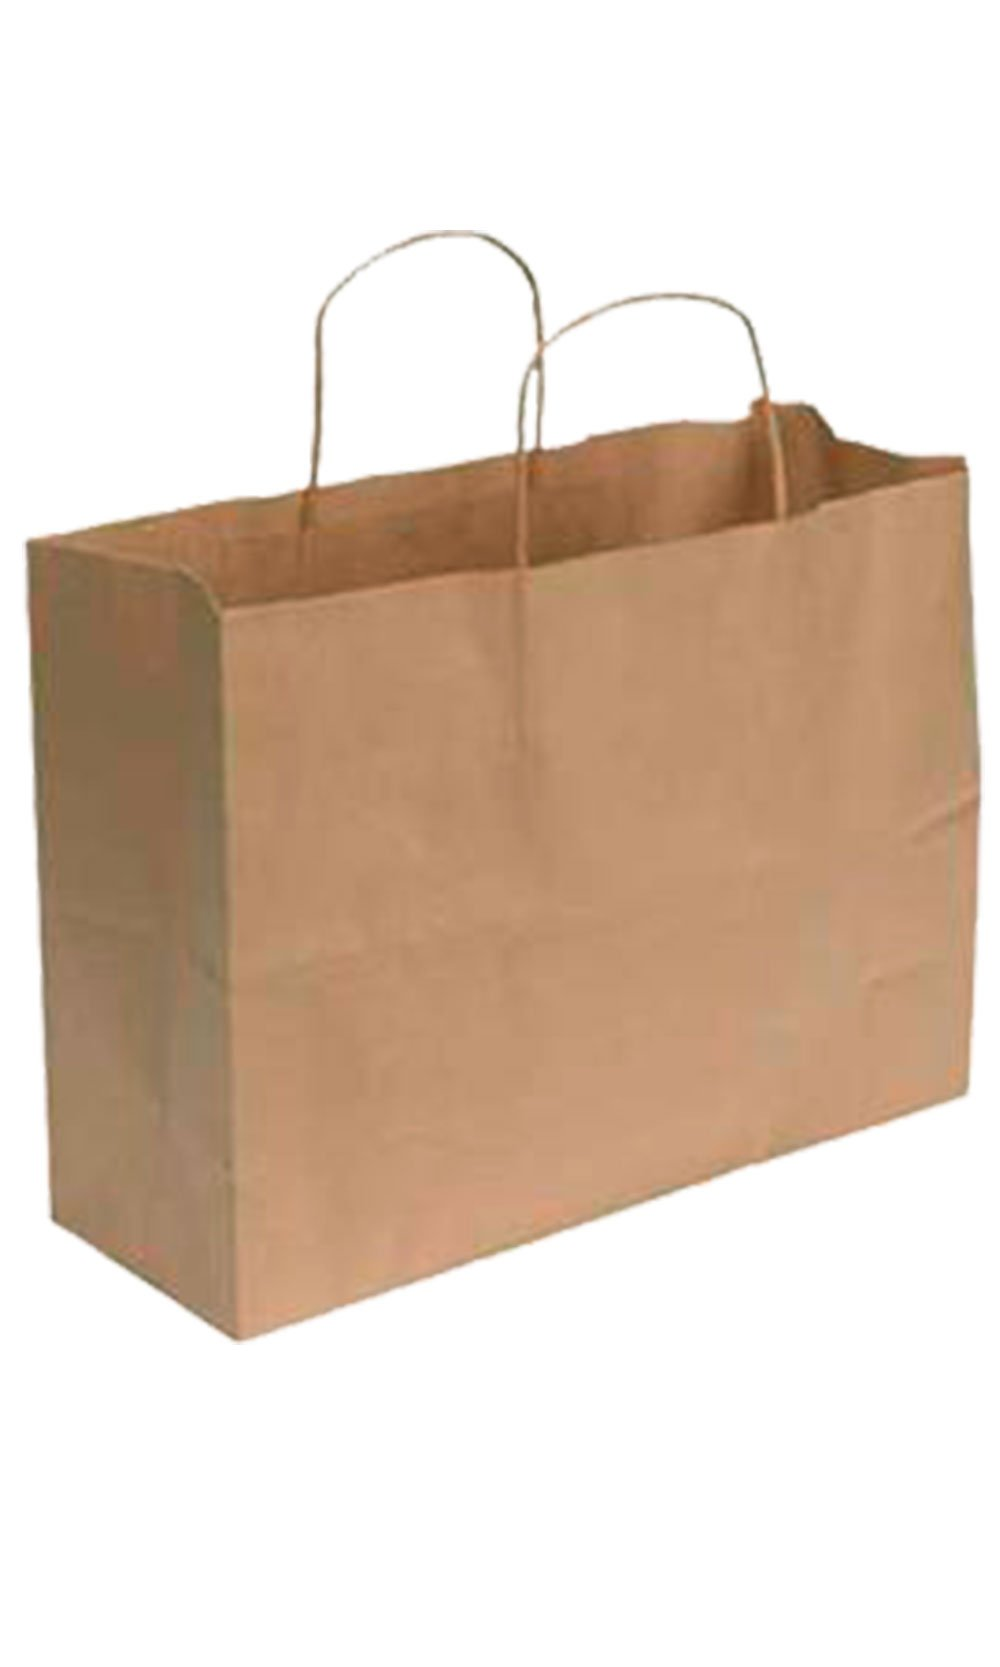 SSWBasics Kraft Paper Shopping Bag - Large (16''L x 6''D x 12 ½''H) - Case of 100